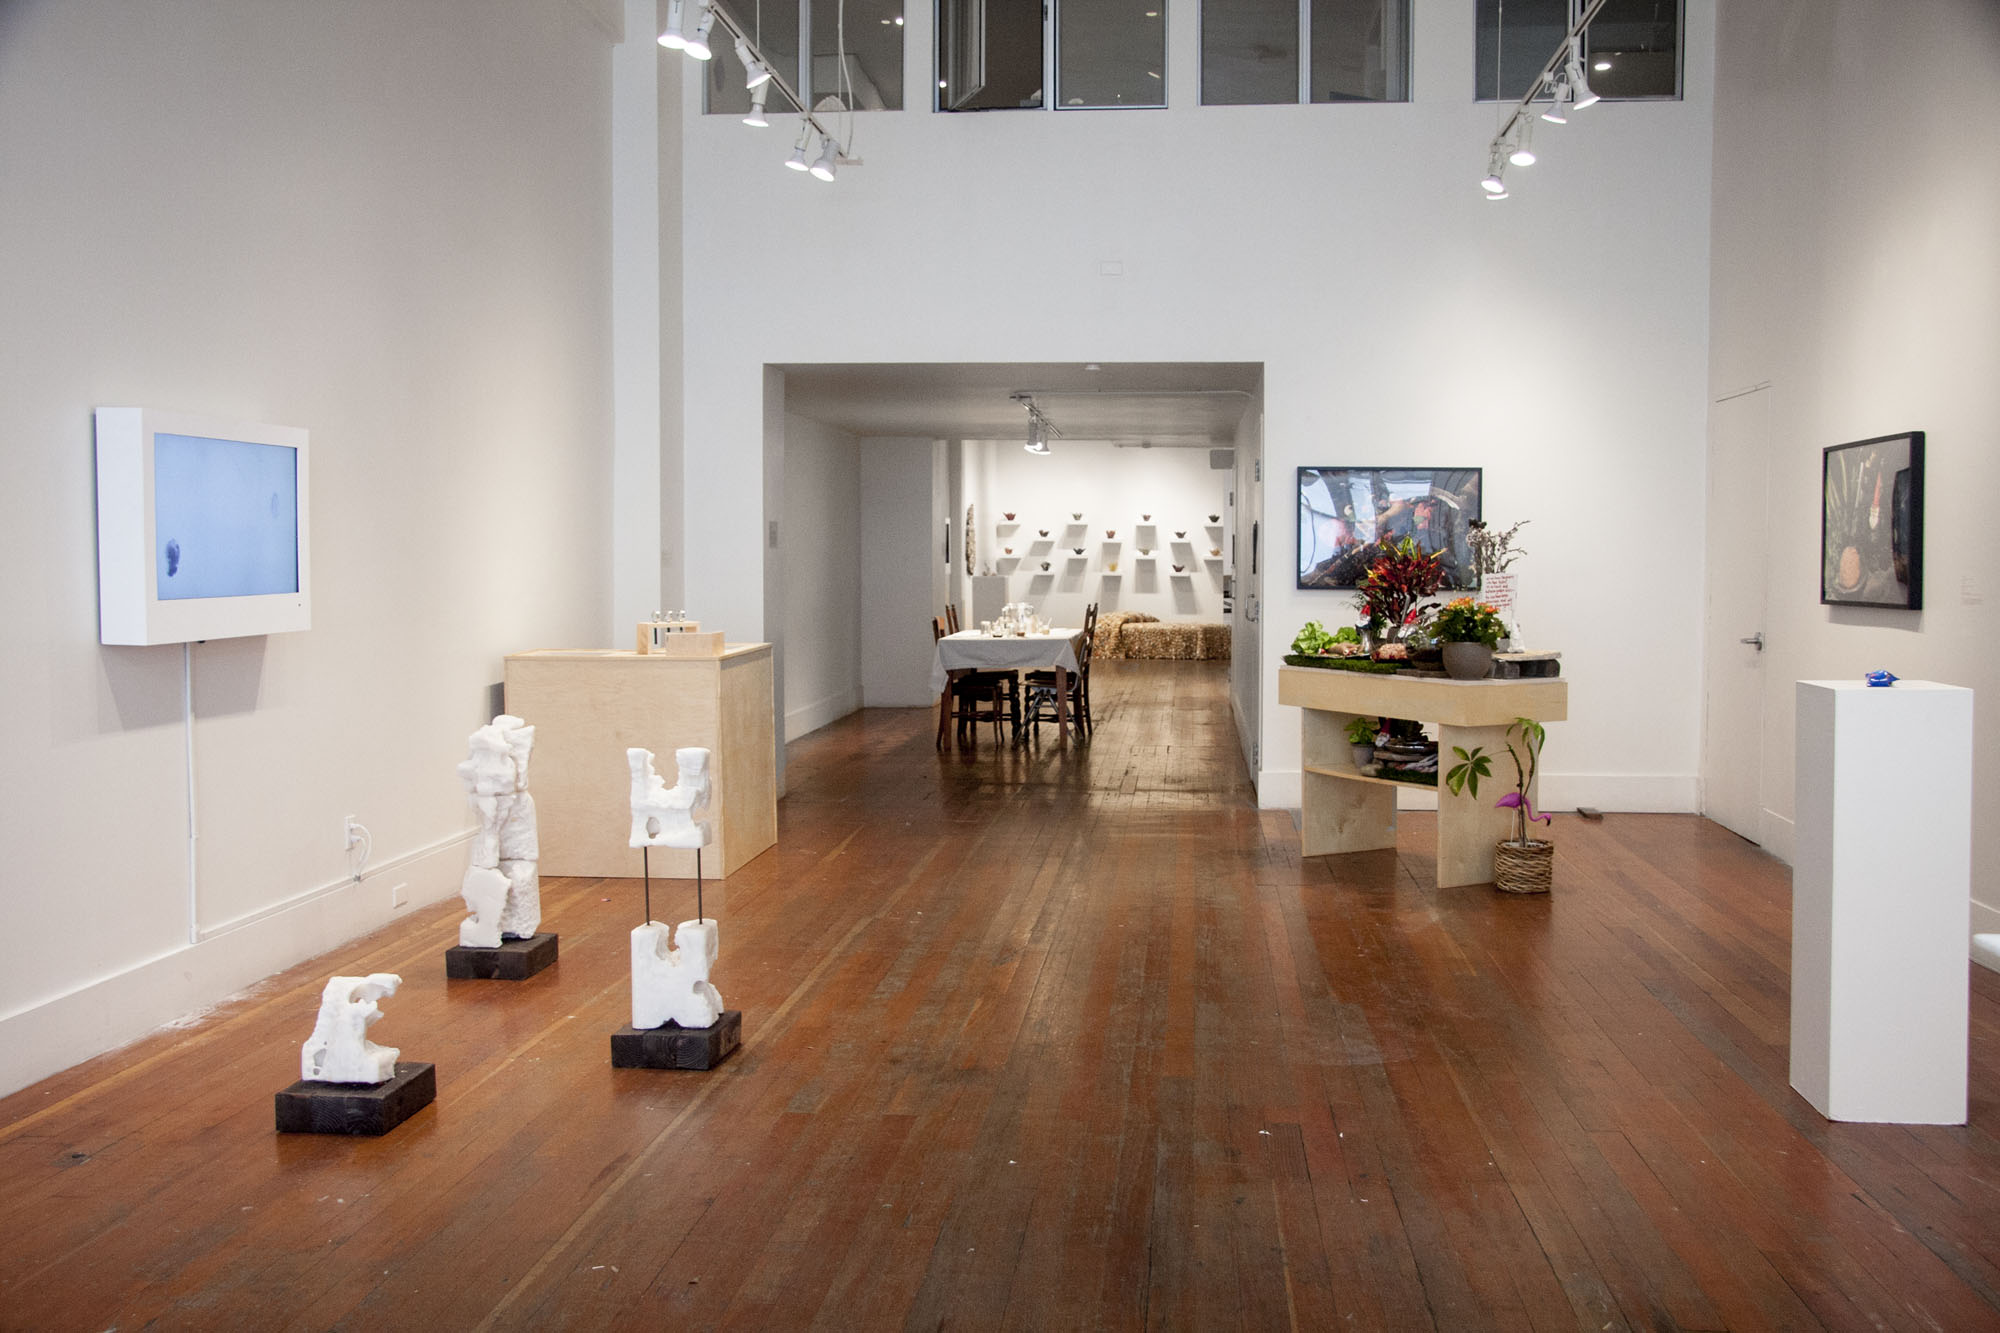 Gallery view of installation